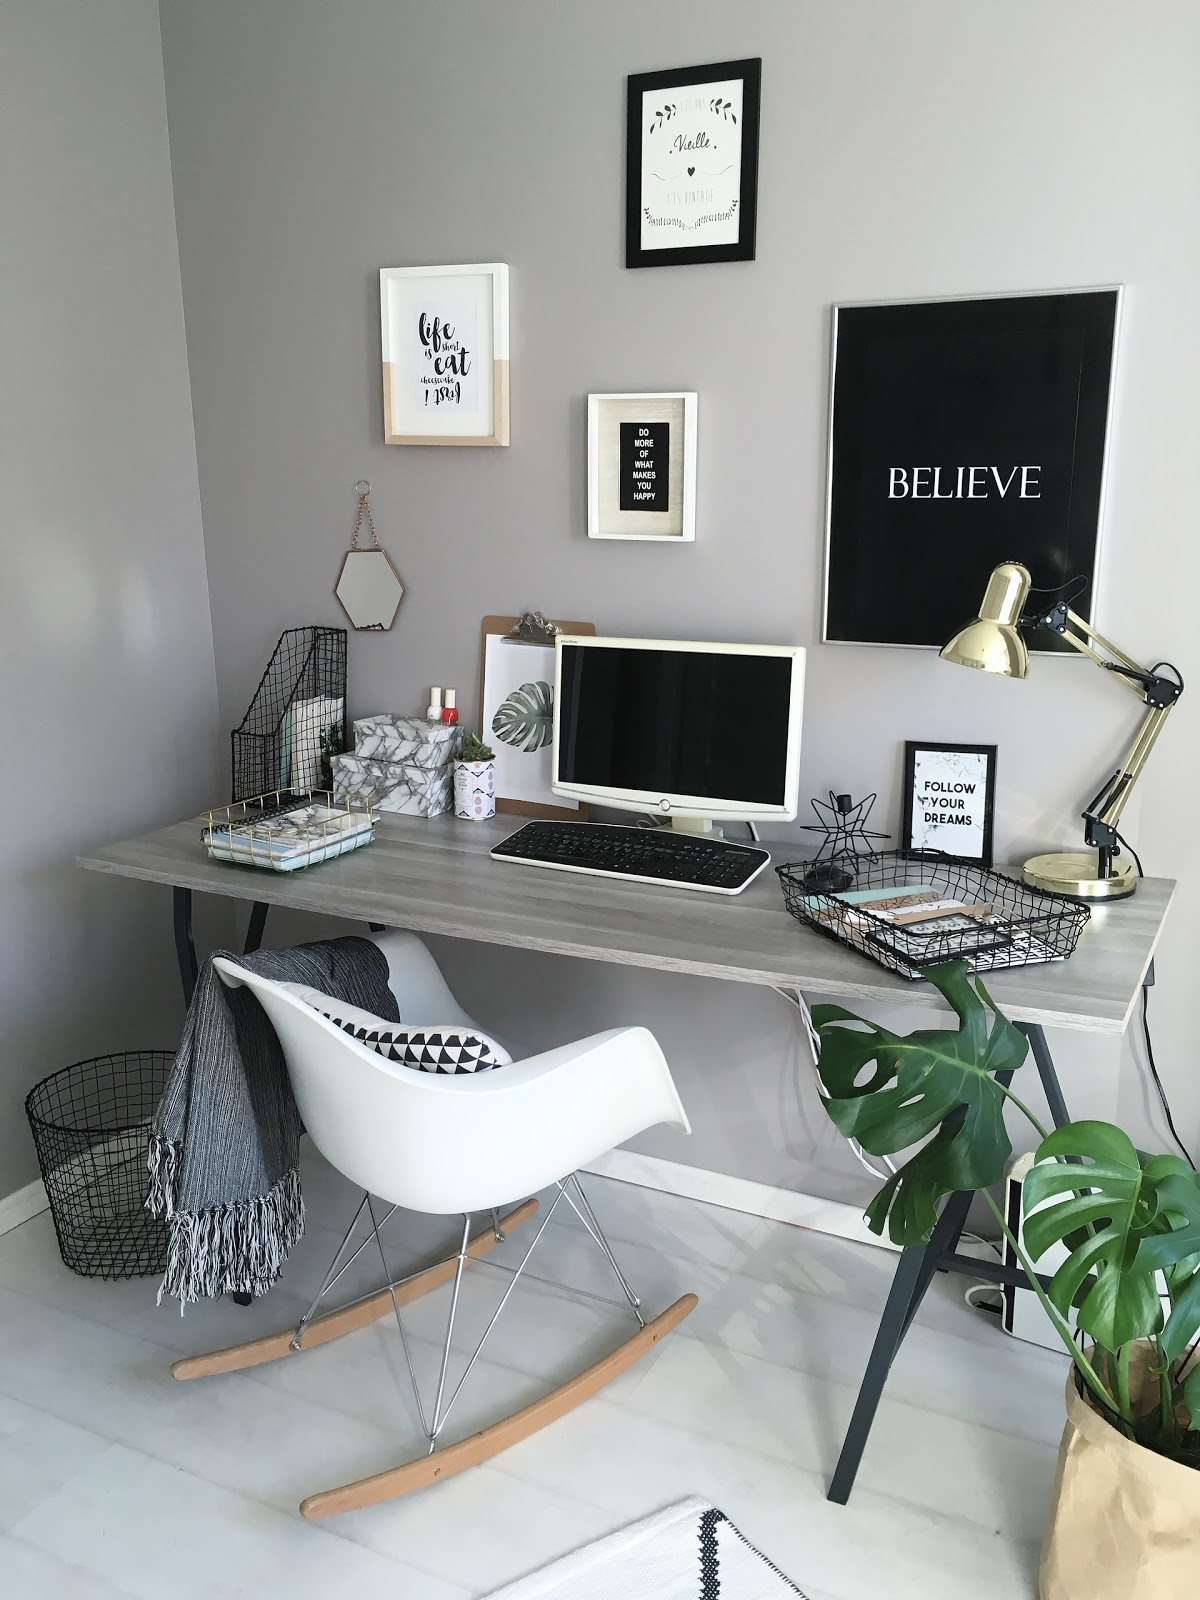 deco mon bureau et mes trouvailles new co chez zeeman pauline dress blog mode lifestyle. Black Bedroom Furniture Sets. Home Design Ideas